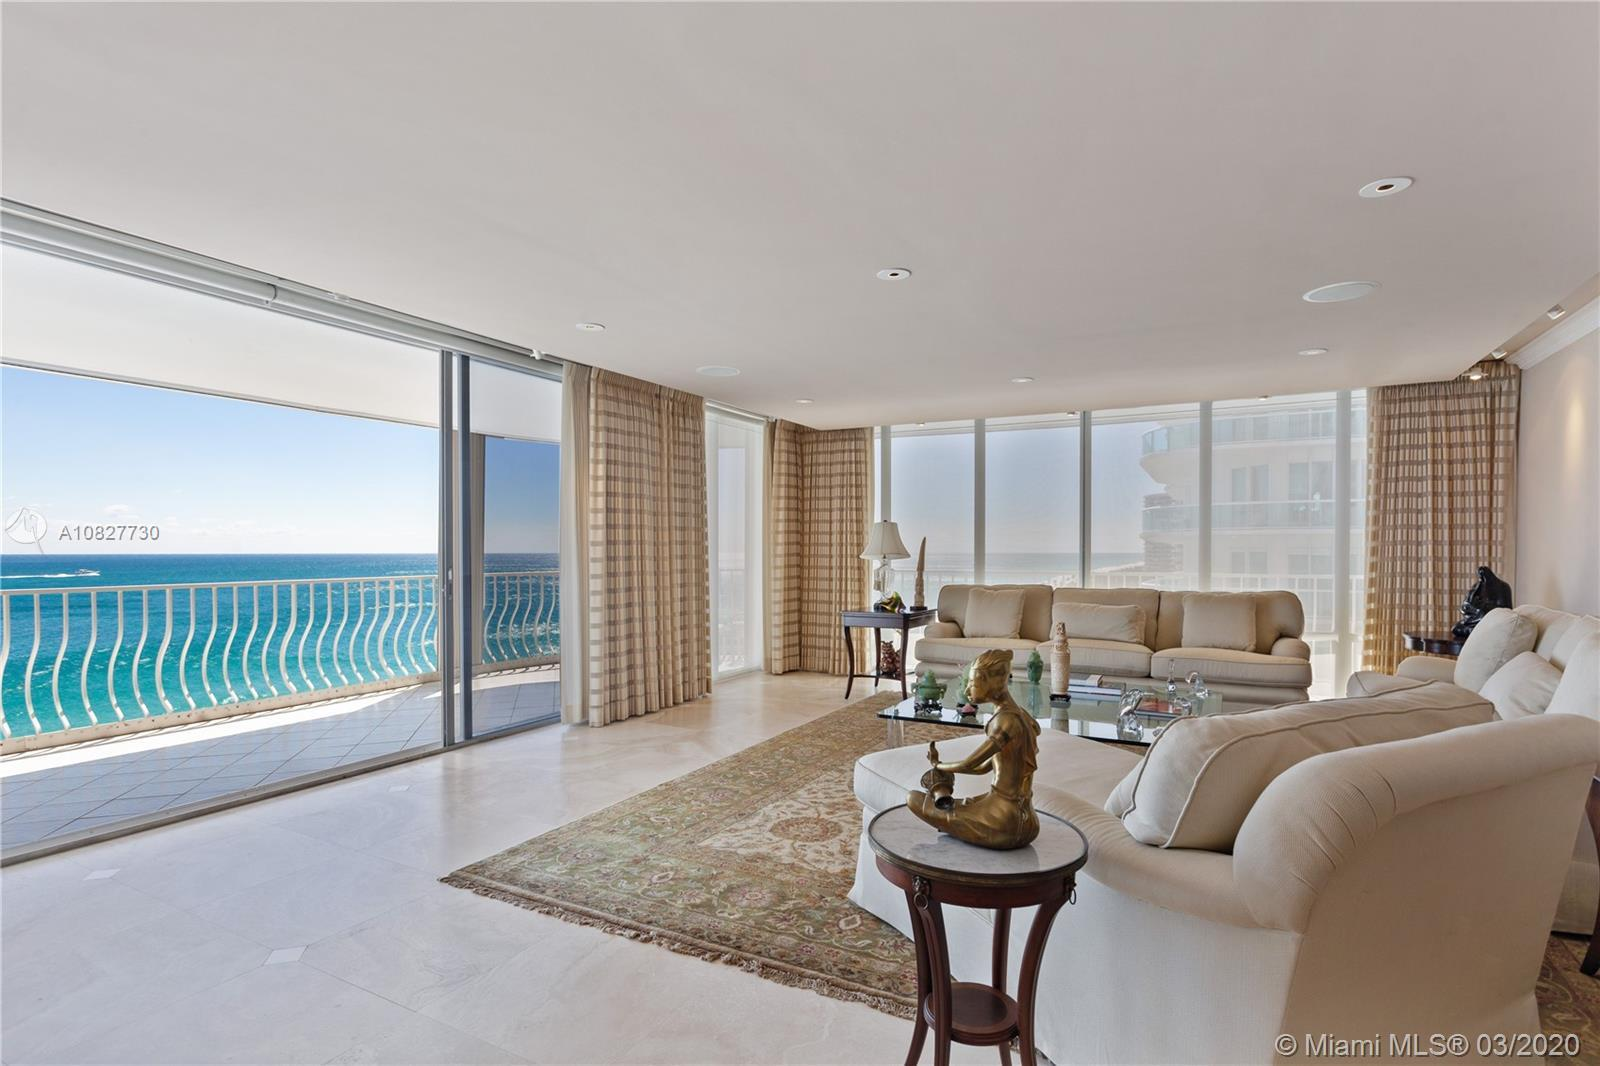 Ultra-elegant 3 bedrooms & 3.5 bath home with breathtaking direct ocean views. This residence boasts